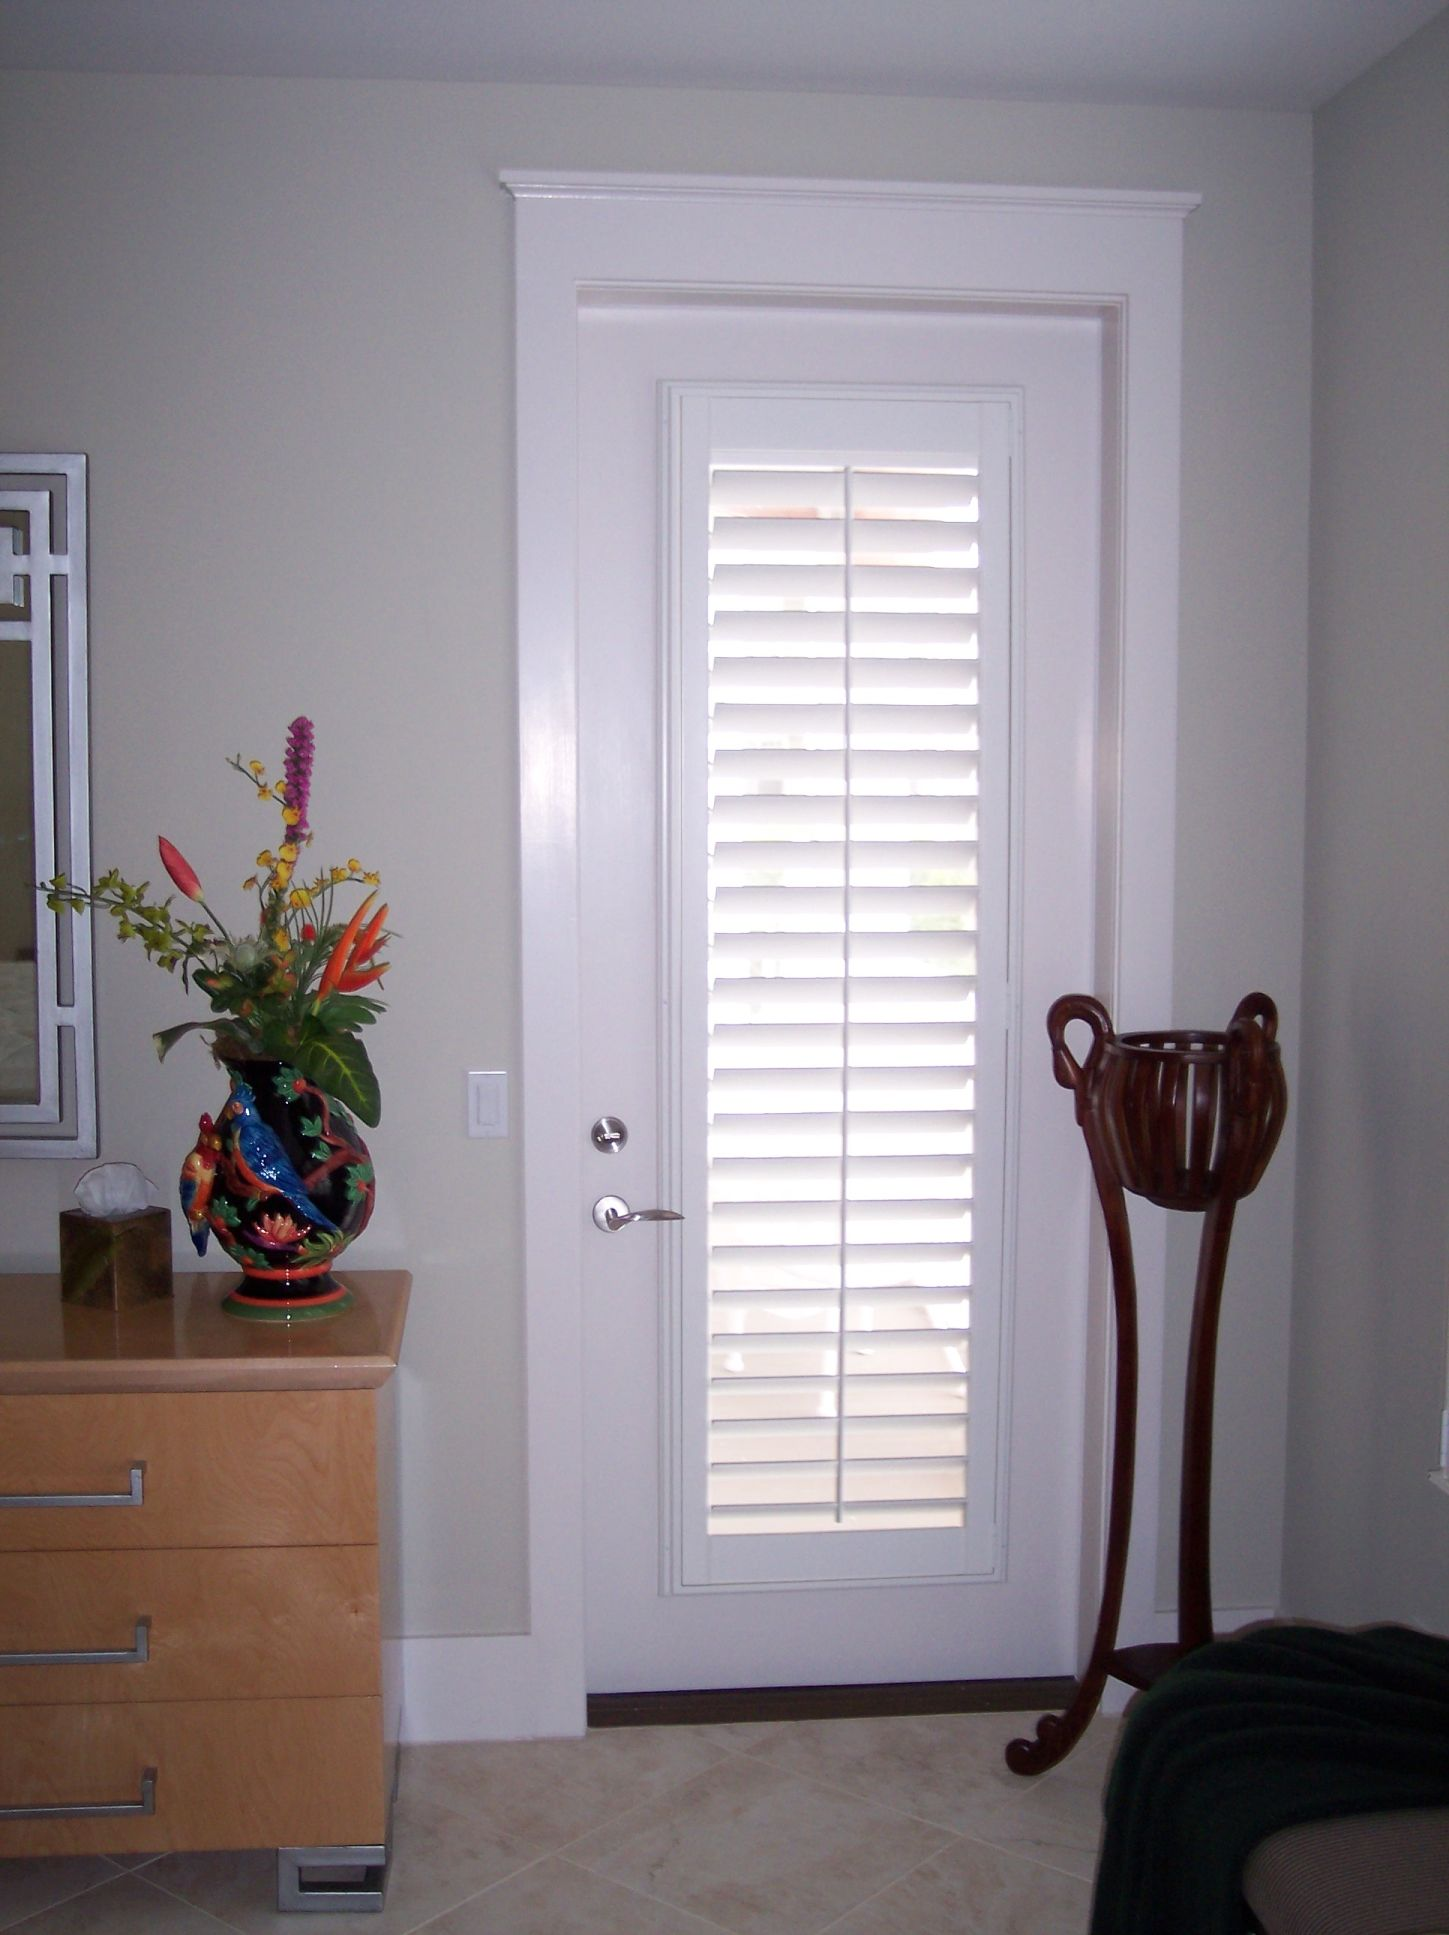 Download Full Size Image Home Design Ideas Plantation Shutters 1449x1935 Plantation Shutters